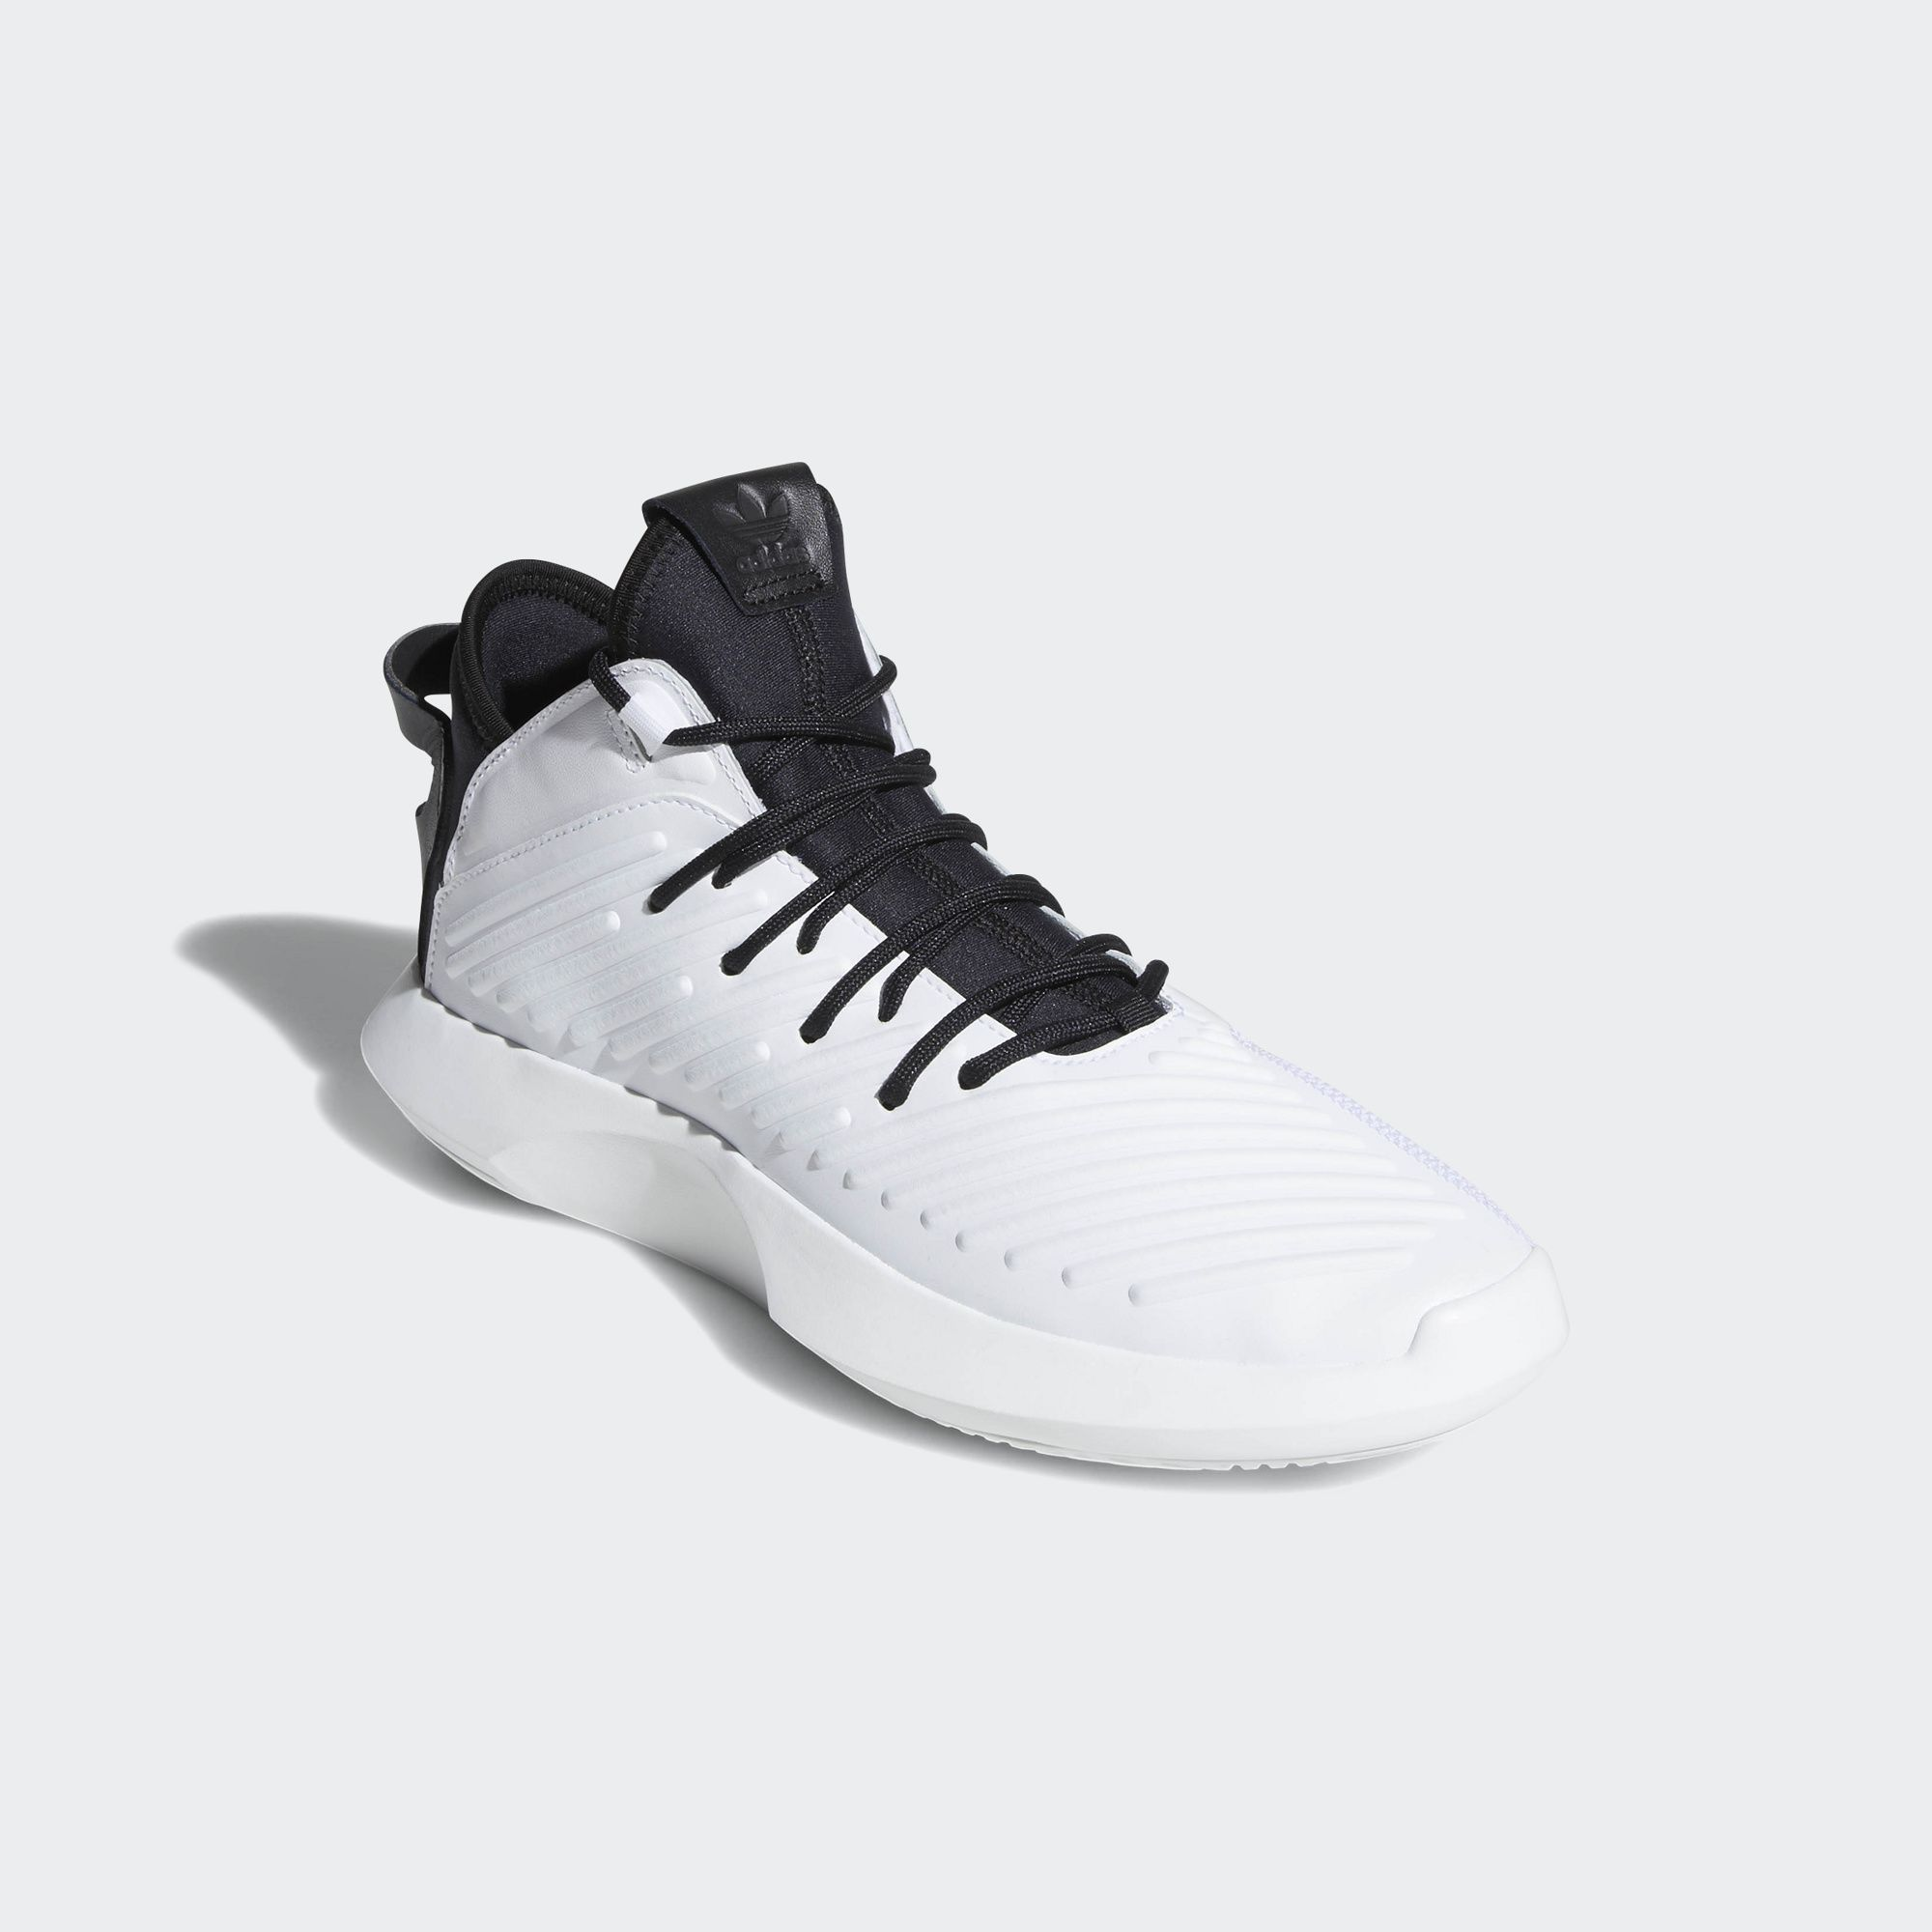 wholesale dealer bfe5b 94adc ... adidas crazy 1 adv white black 4